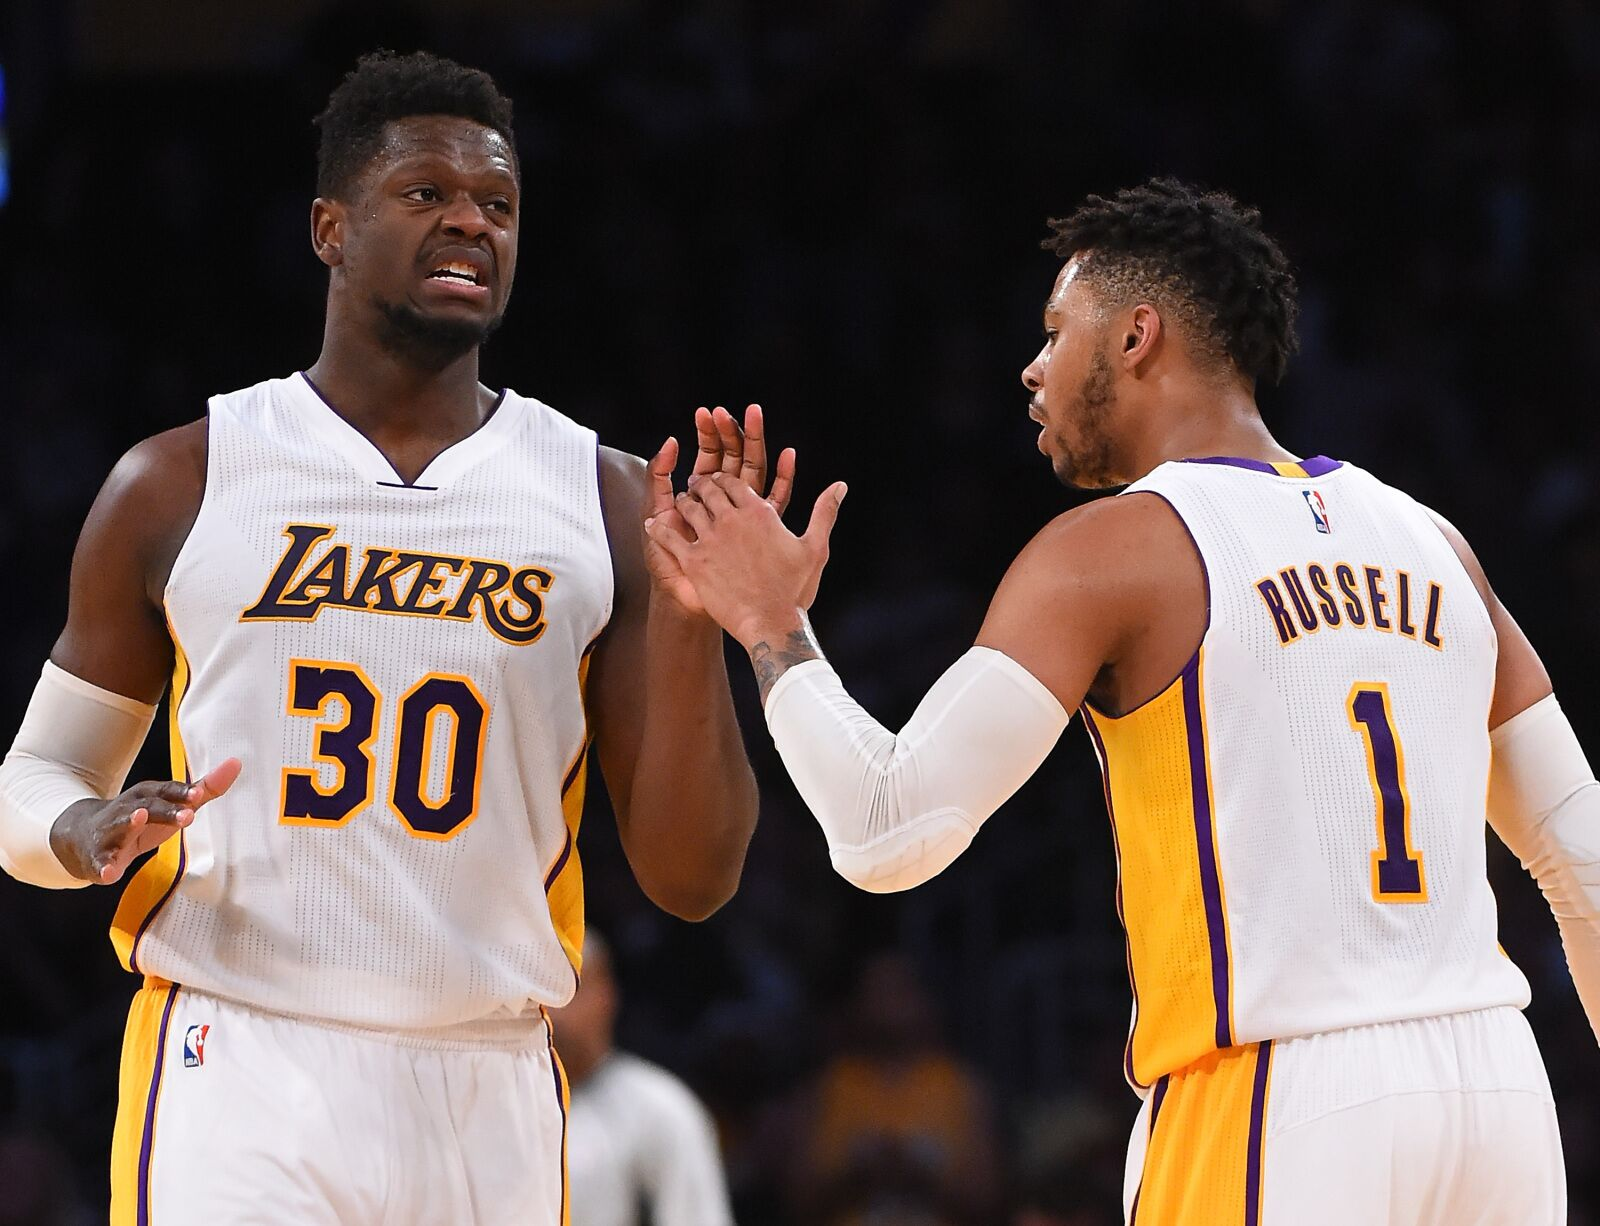 Los Angeles Lakers: Why have D'Angelo Russell, Julius Randle flourished elsewhere